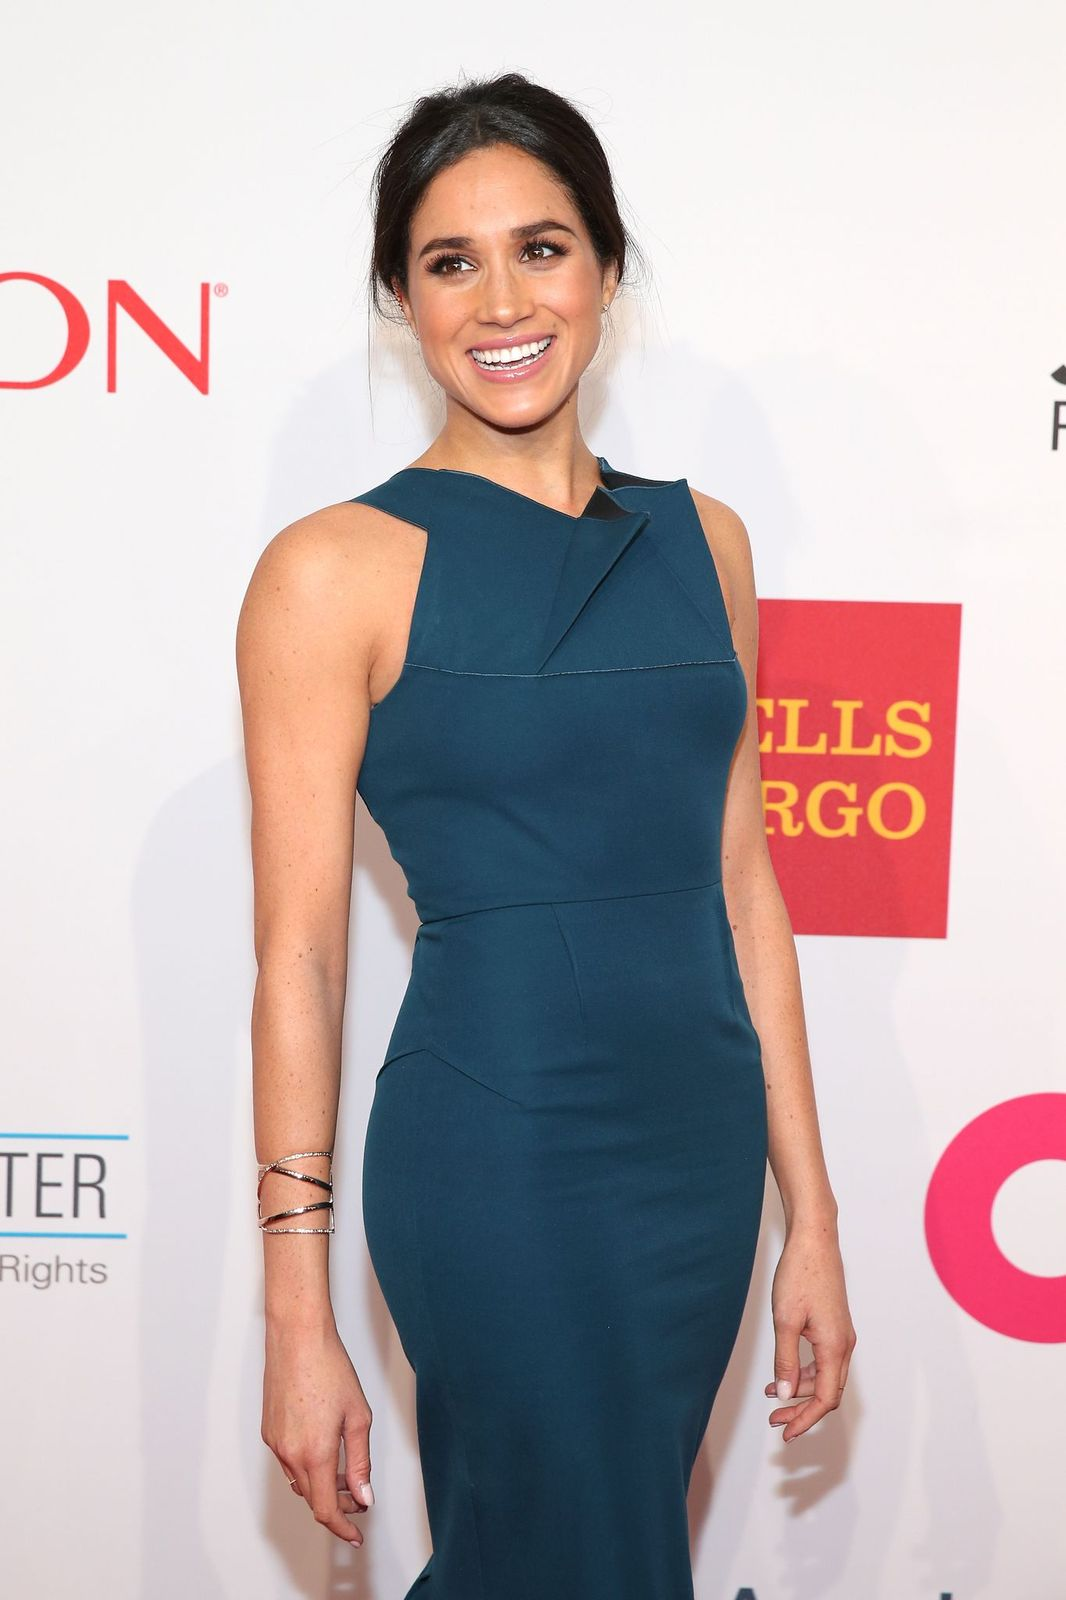 Meghan Markle at the Elton John AIDS Foundation's 13th Annual An Enduring Vision Benefit on October 28, 2014, in New York City | Photo: Neilson Barnard/Getty Images